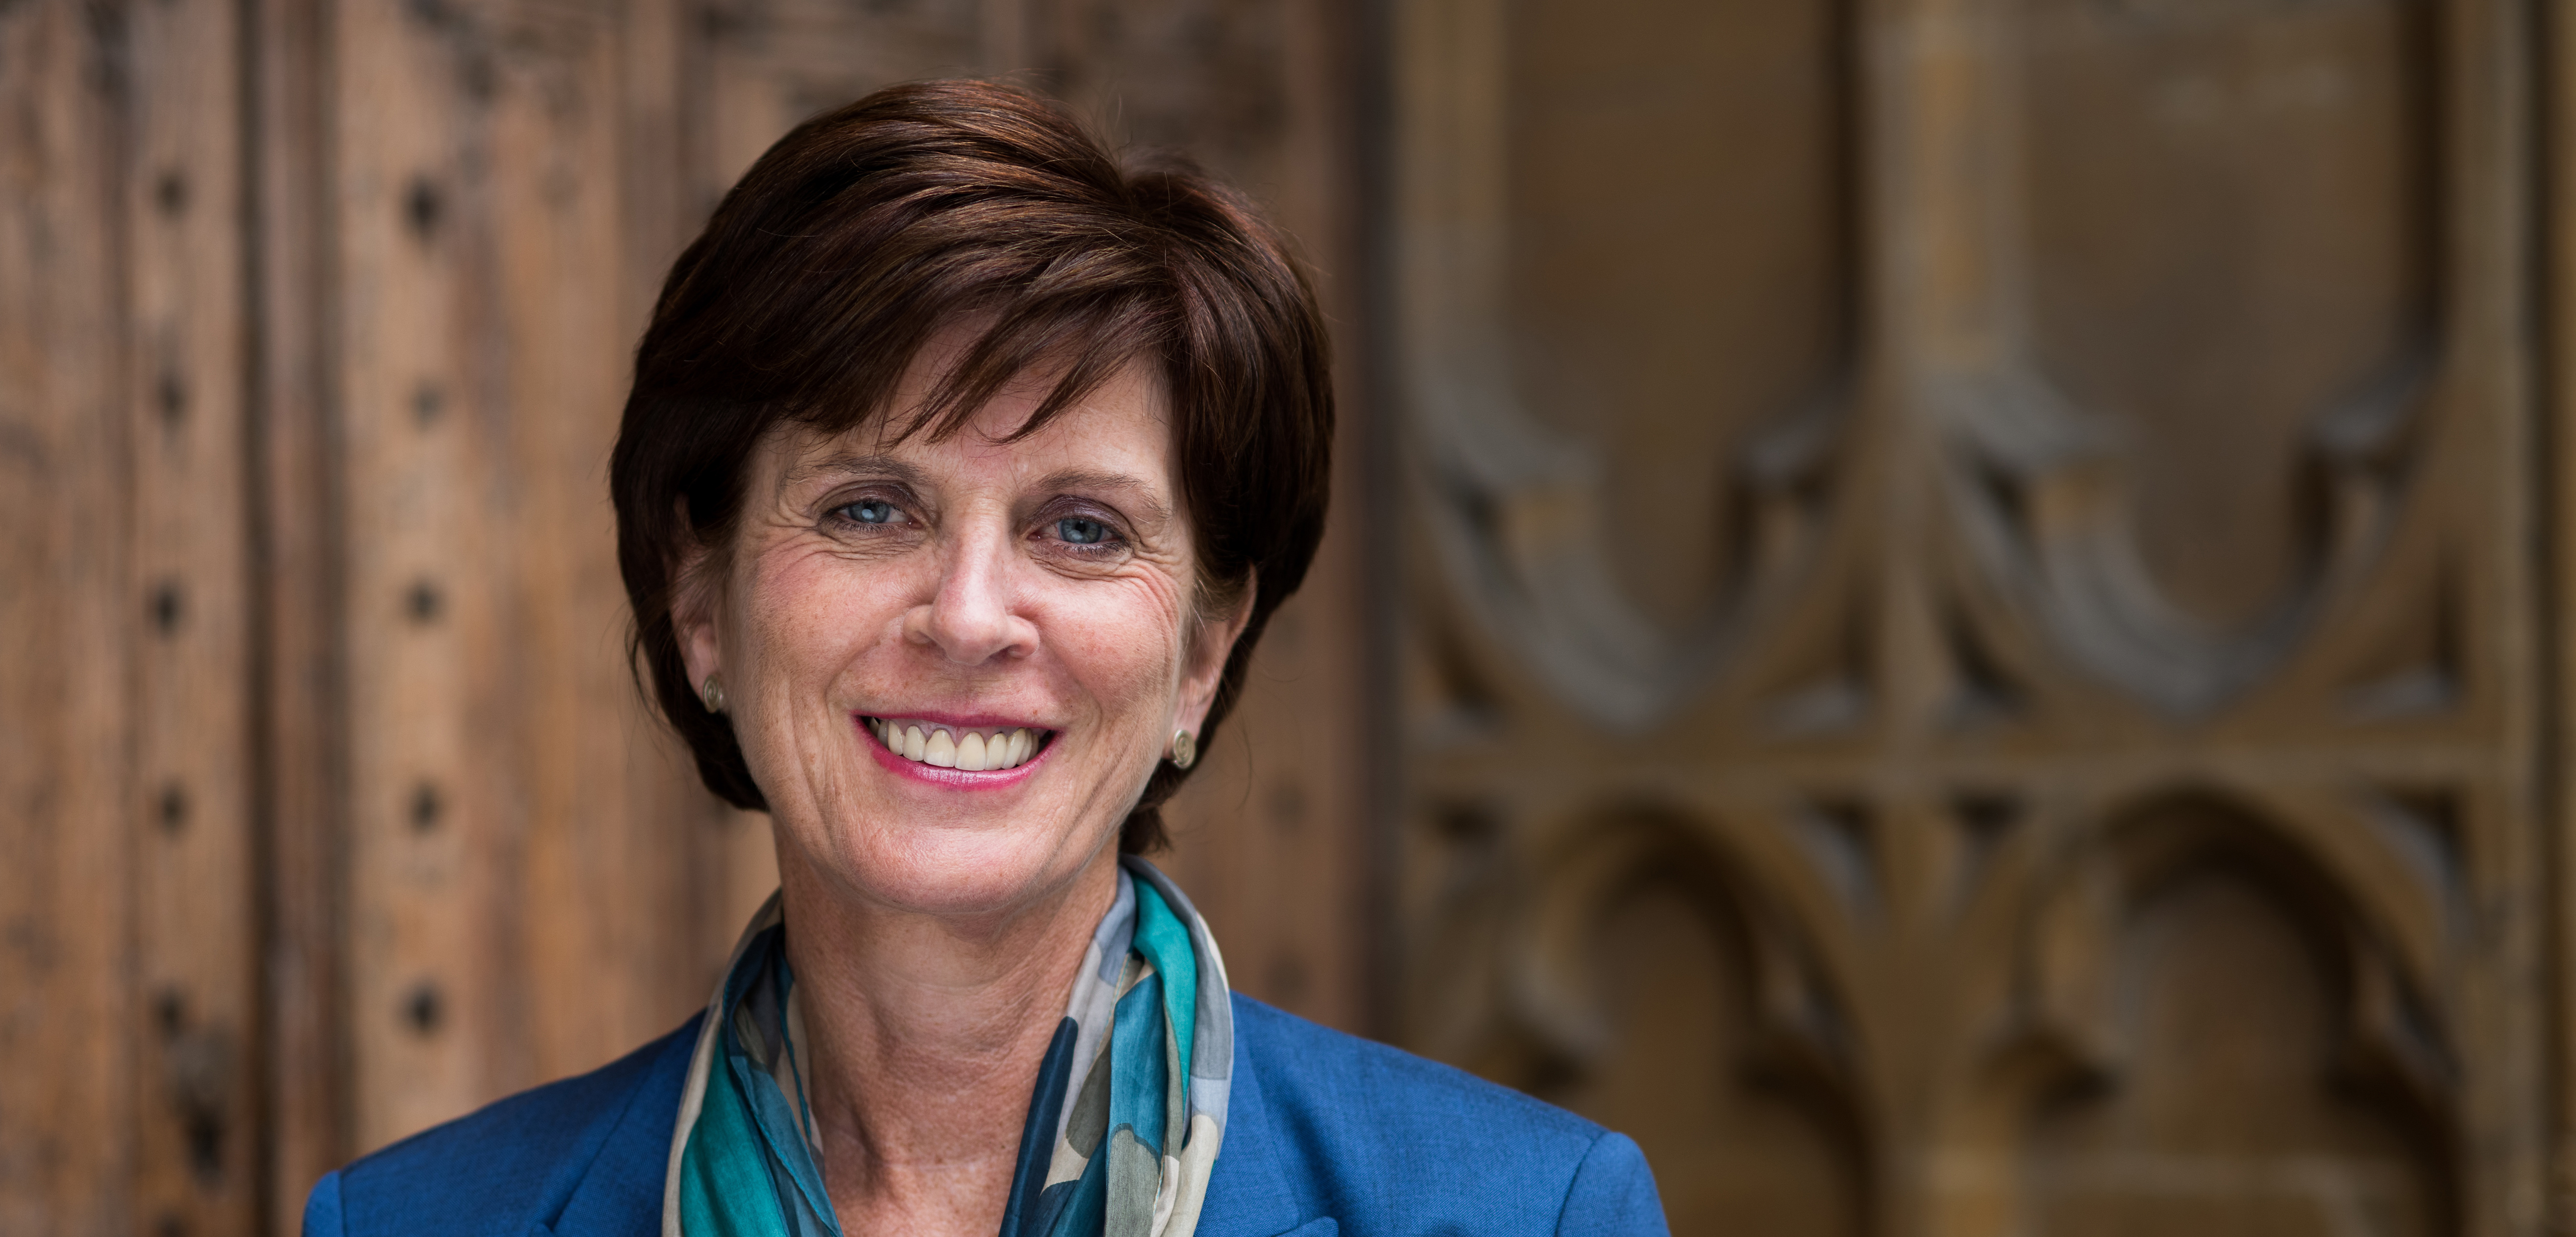 New Oxford Vice-Chancellor calls for 'agile' University at the forefront of global change